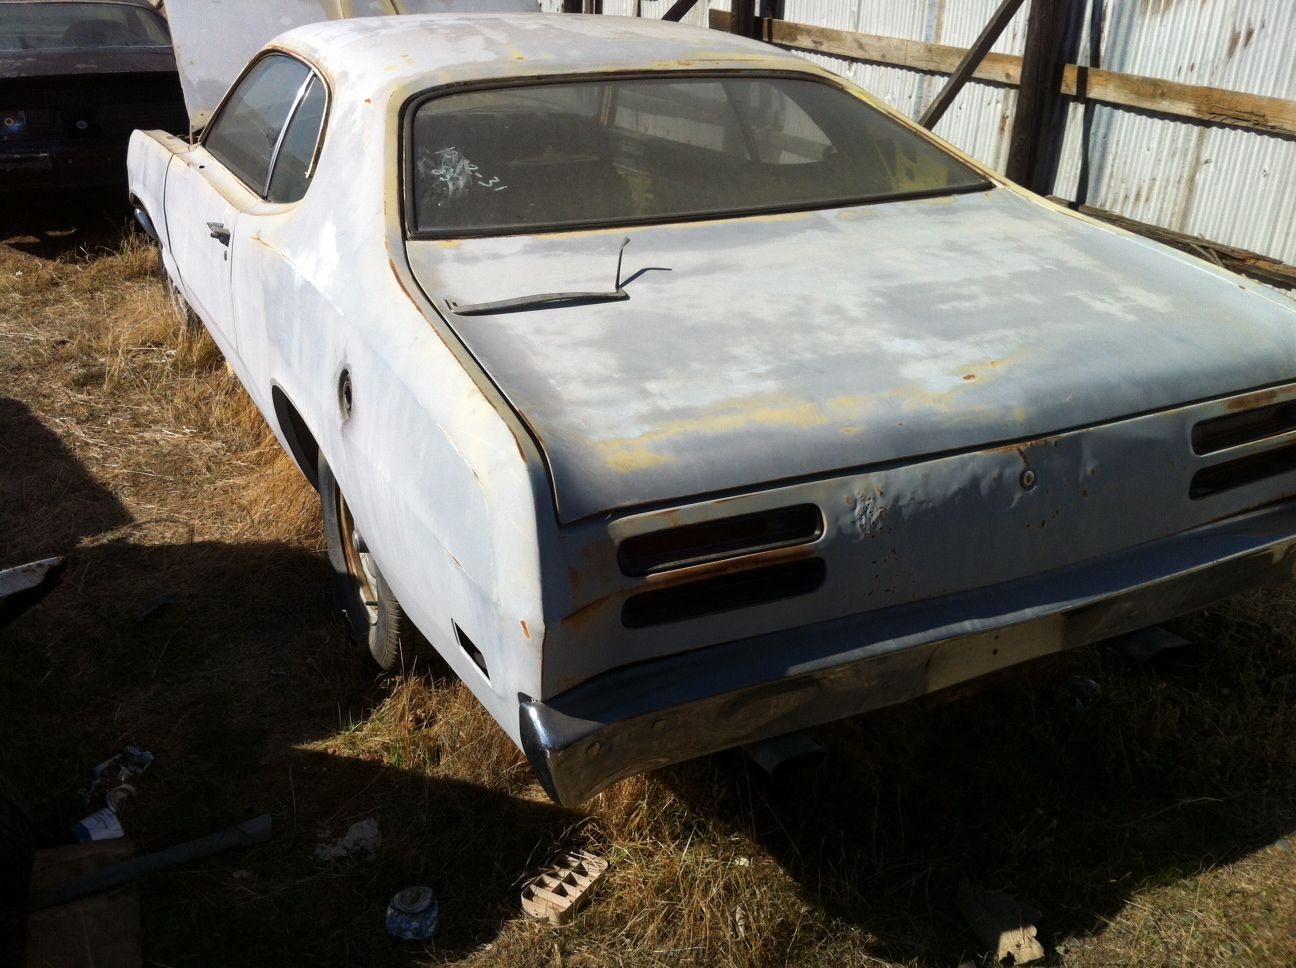 Auto Parts For Sale Redding California: 1971 340 Plymouth Duster Headed For The Crusher